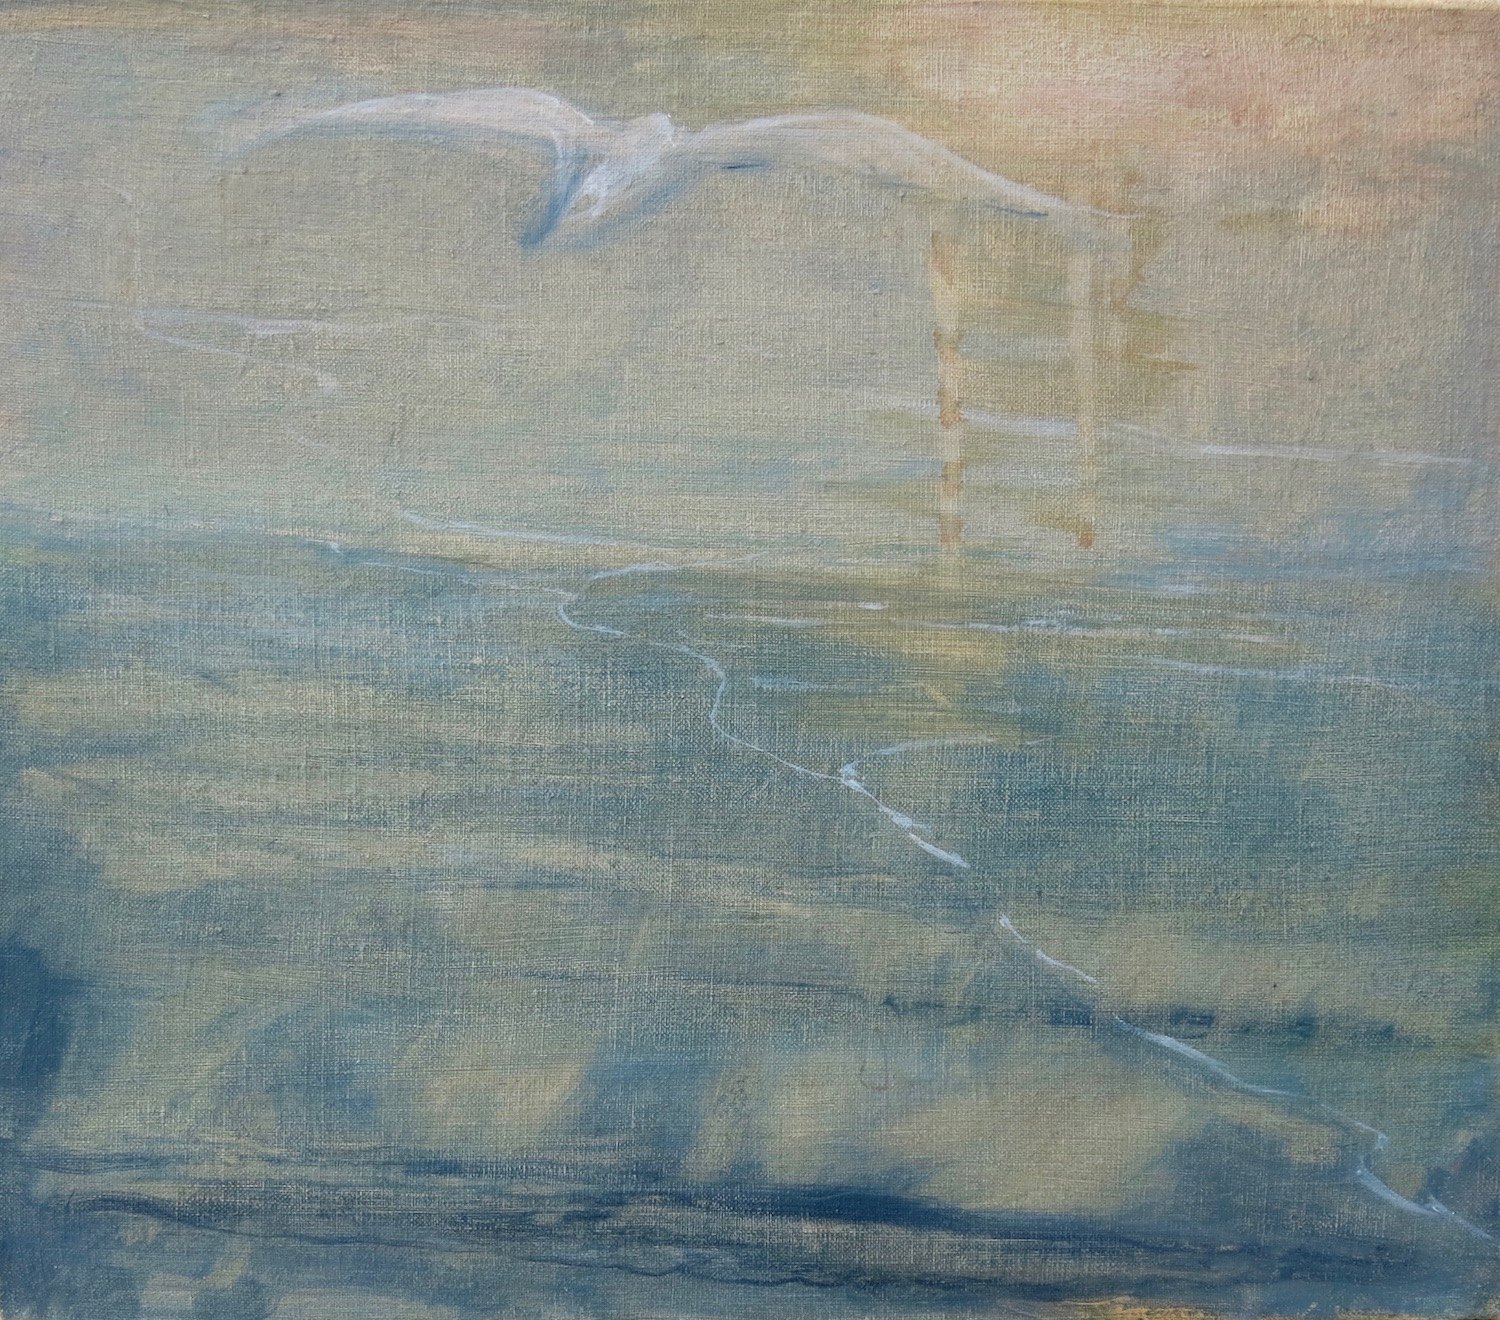 journeying west  oil and egg tempera on gessoed linen mounted on board  27x30.5 cm